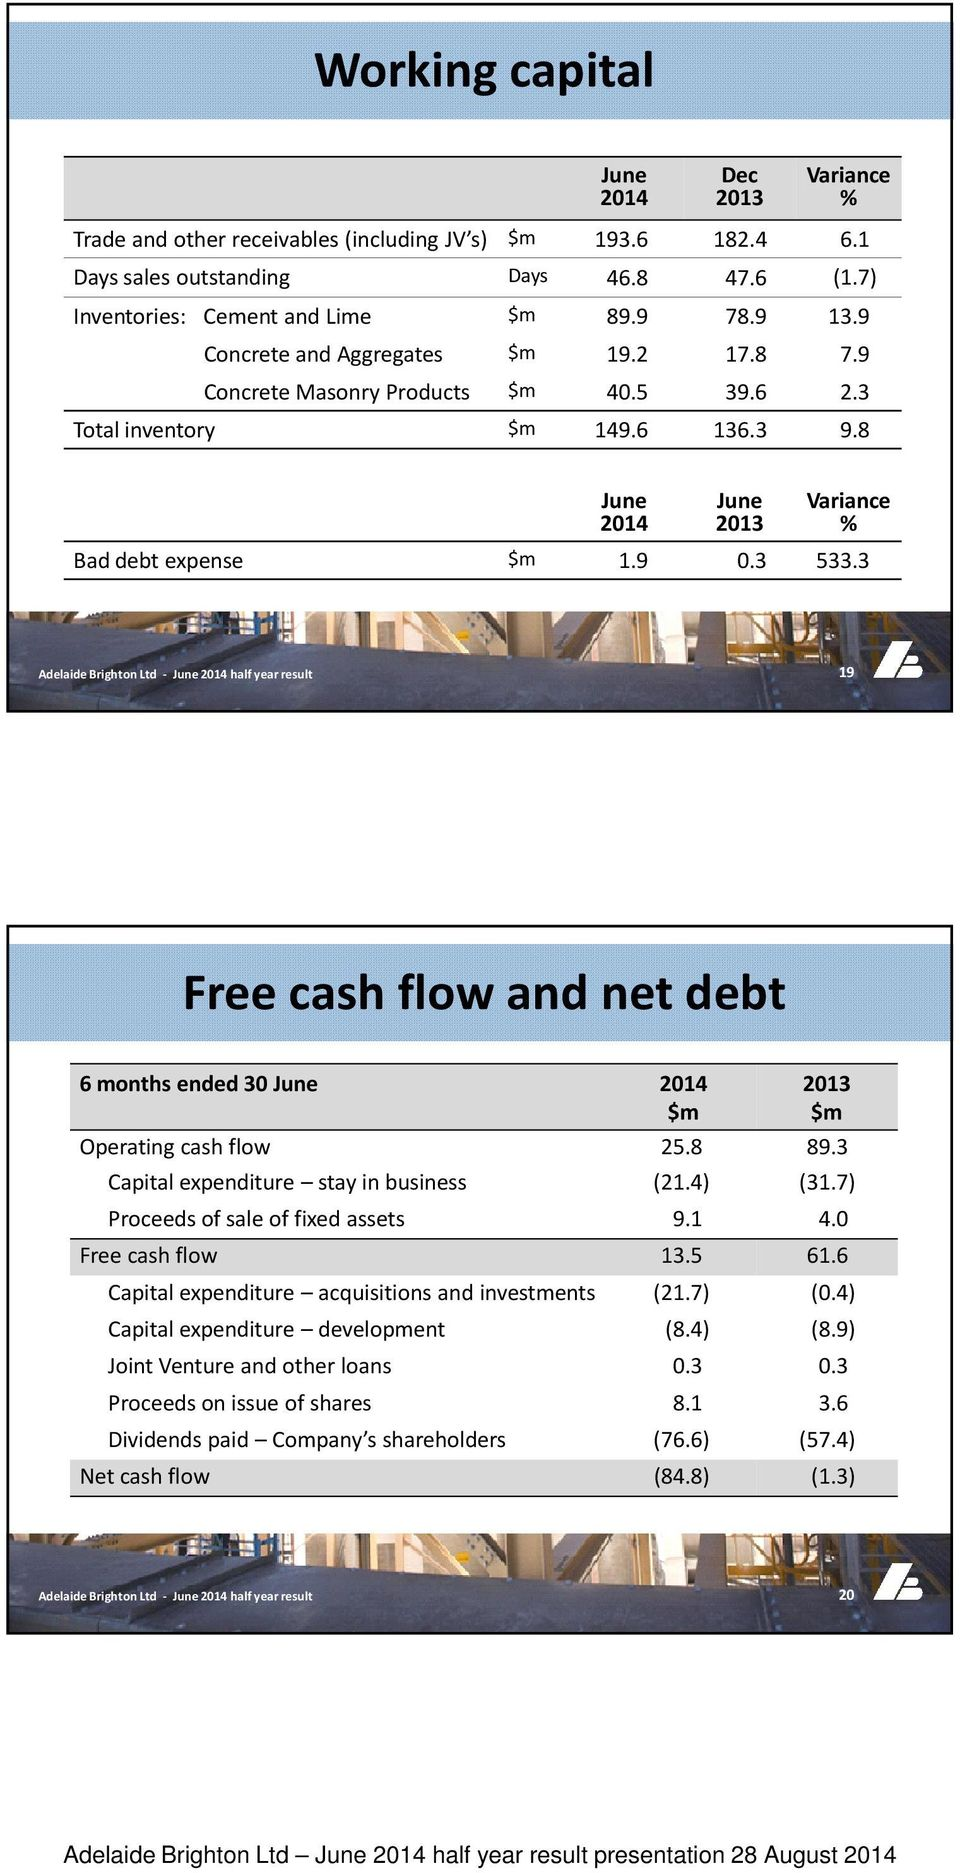 3 19 Free cash flow and net debt 6 months ended 30 June 2014 2013 Operating cash flow 25.8 89.3 Capital expenditure stay in business (21.4) (31.7) Proceeds of sale of fixed assets 9.1 4.